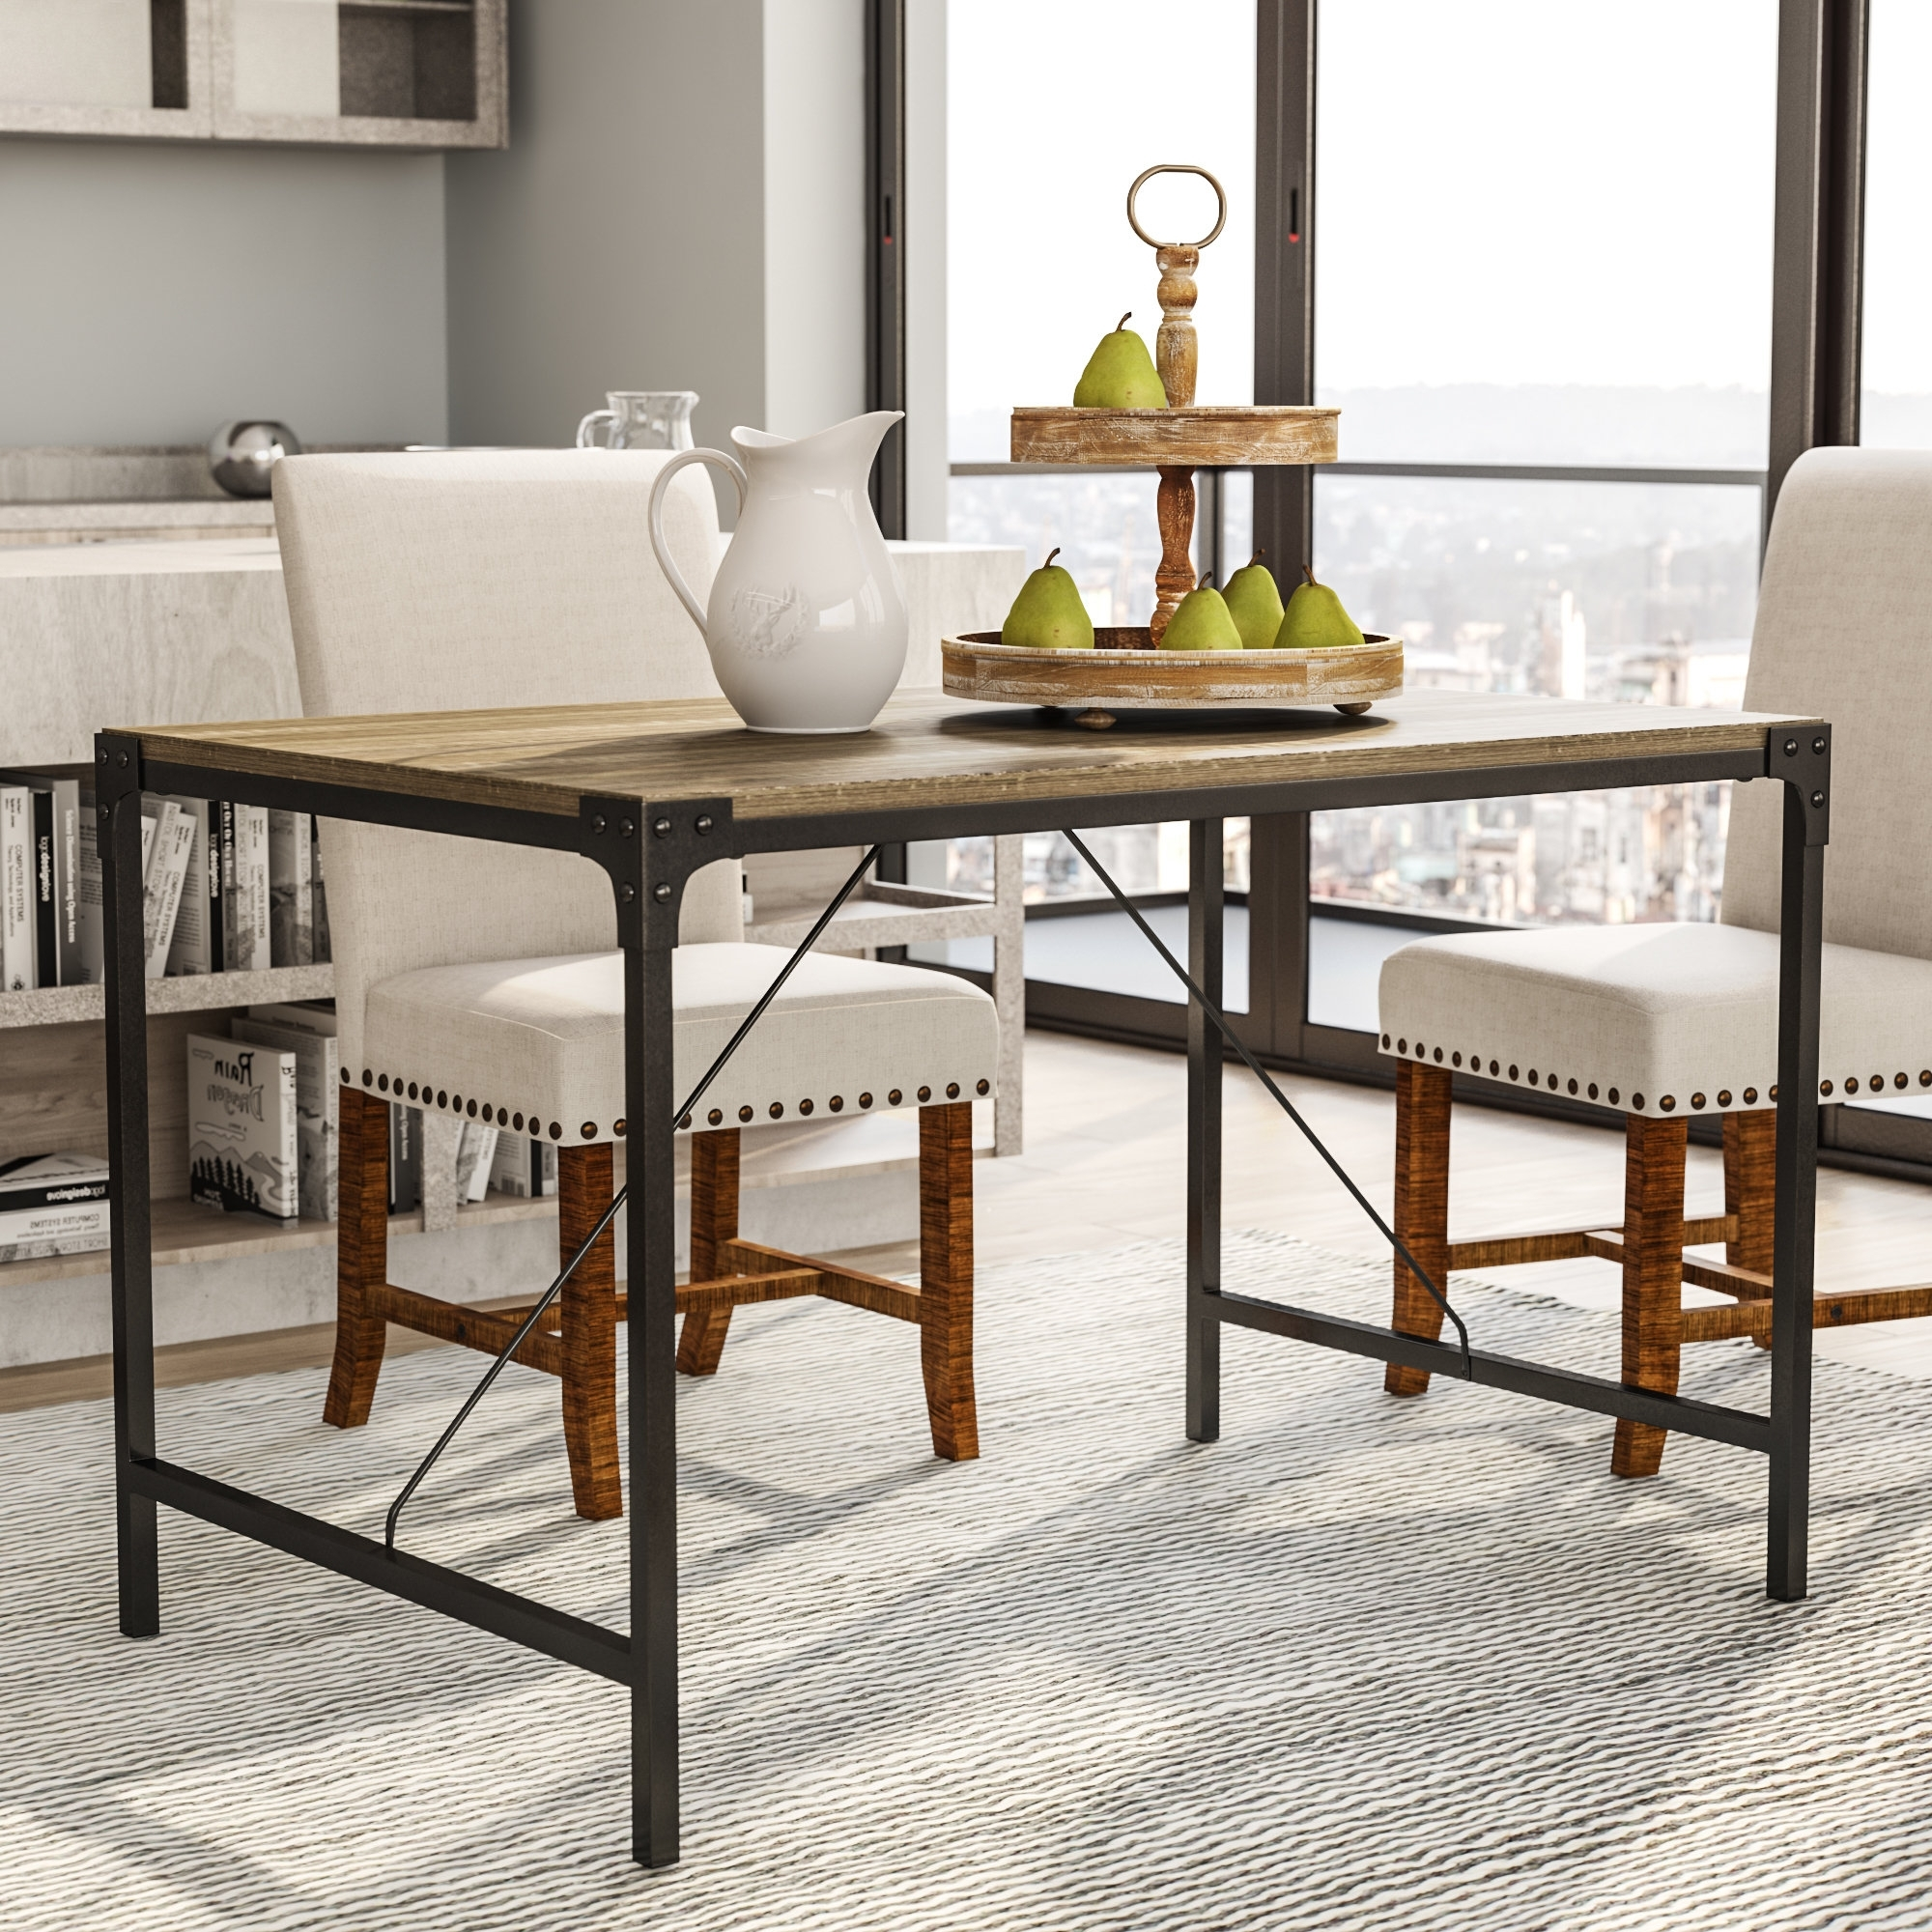 Most Up To Date Laurel Foundry Modern Farmhouse Madeline Angle Iron And Wood Dining Pertaining To Iron And Wood Dining Tables (View 18 of 25)